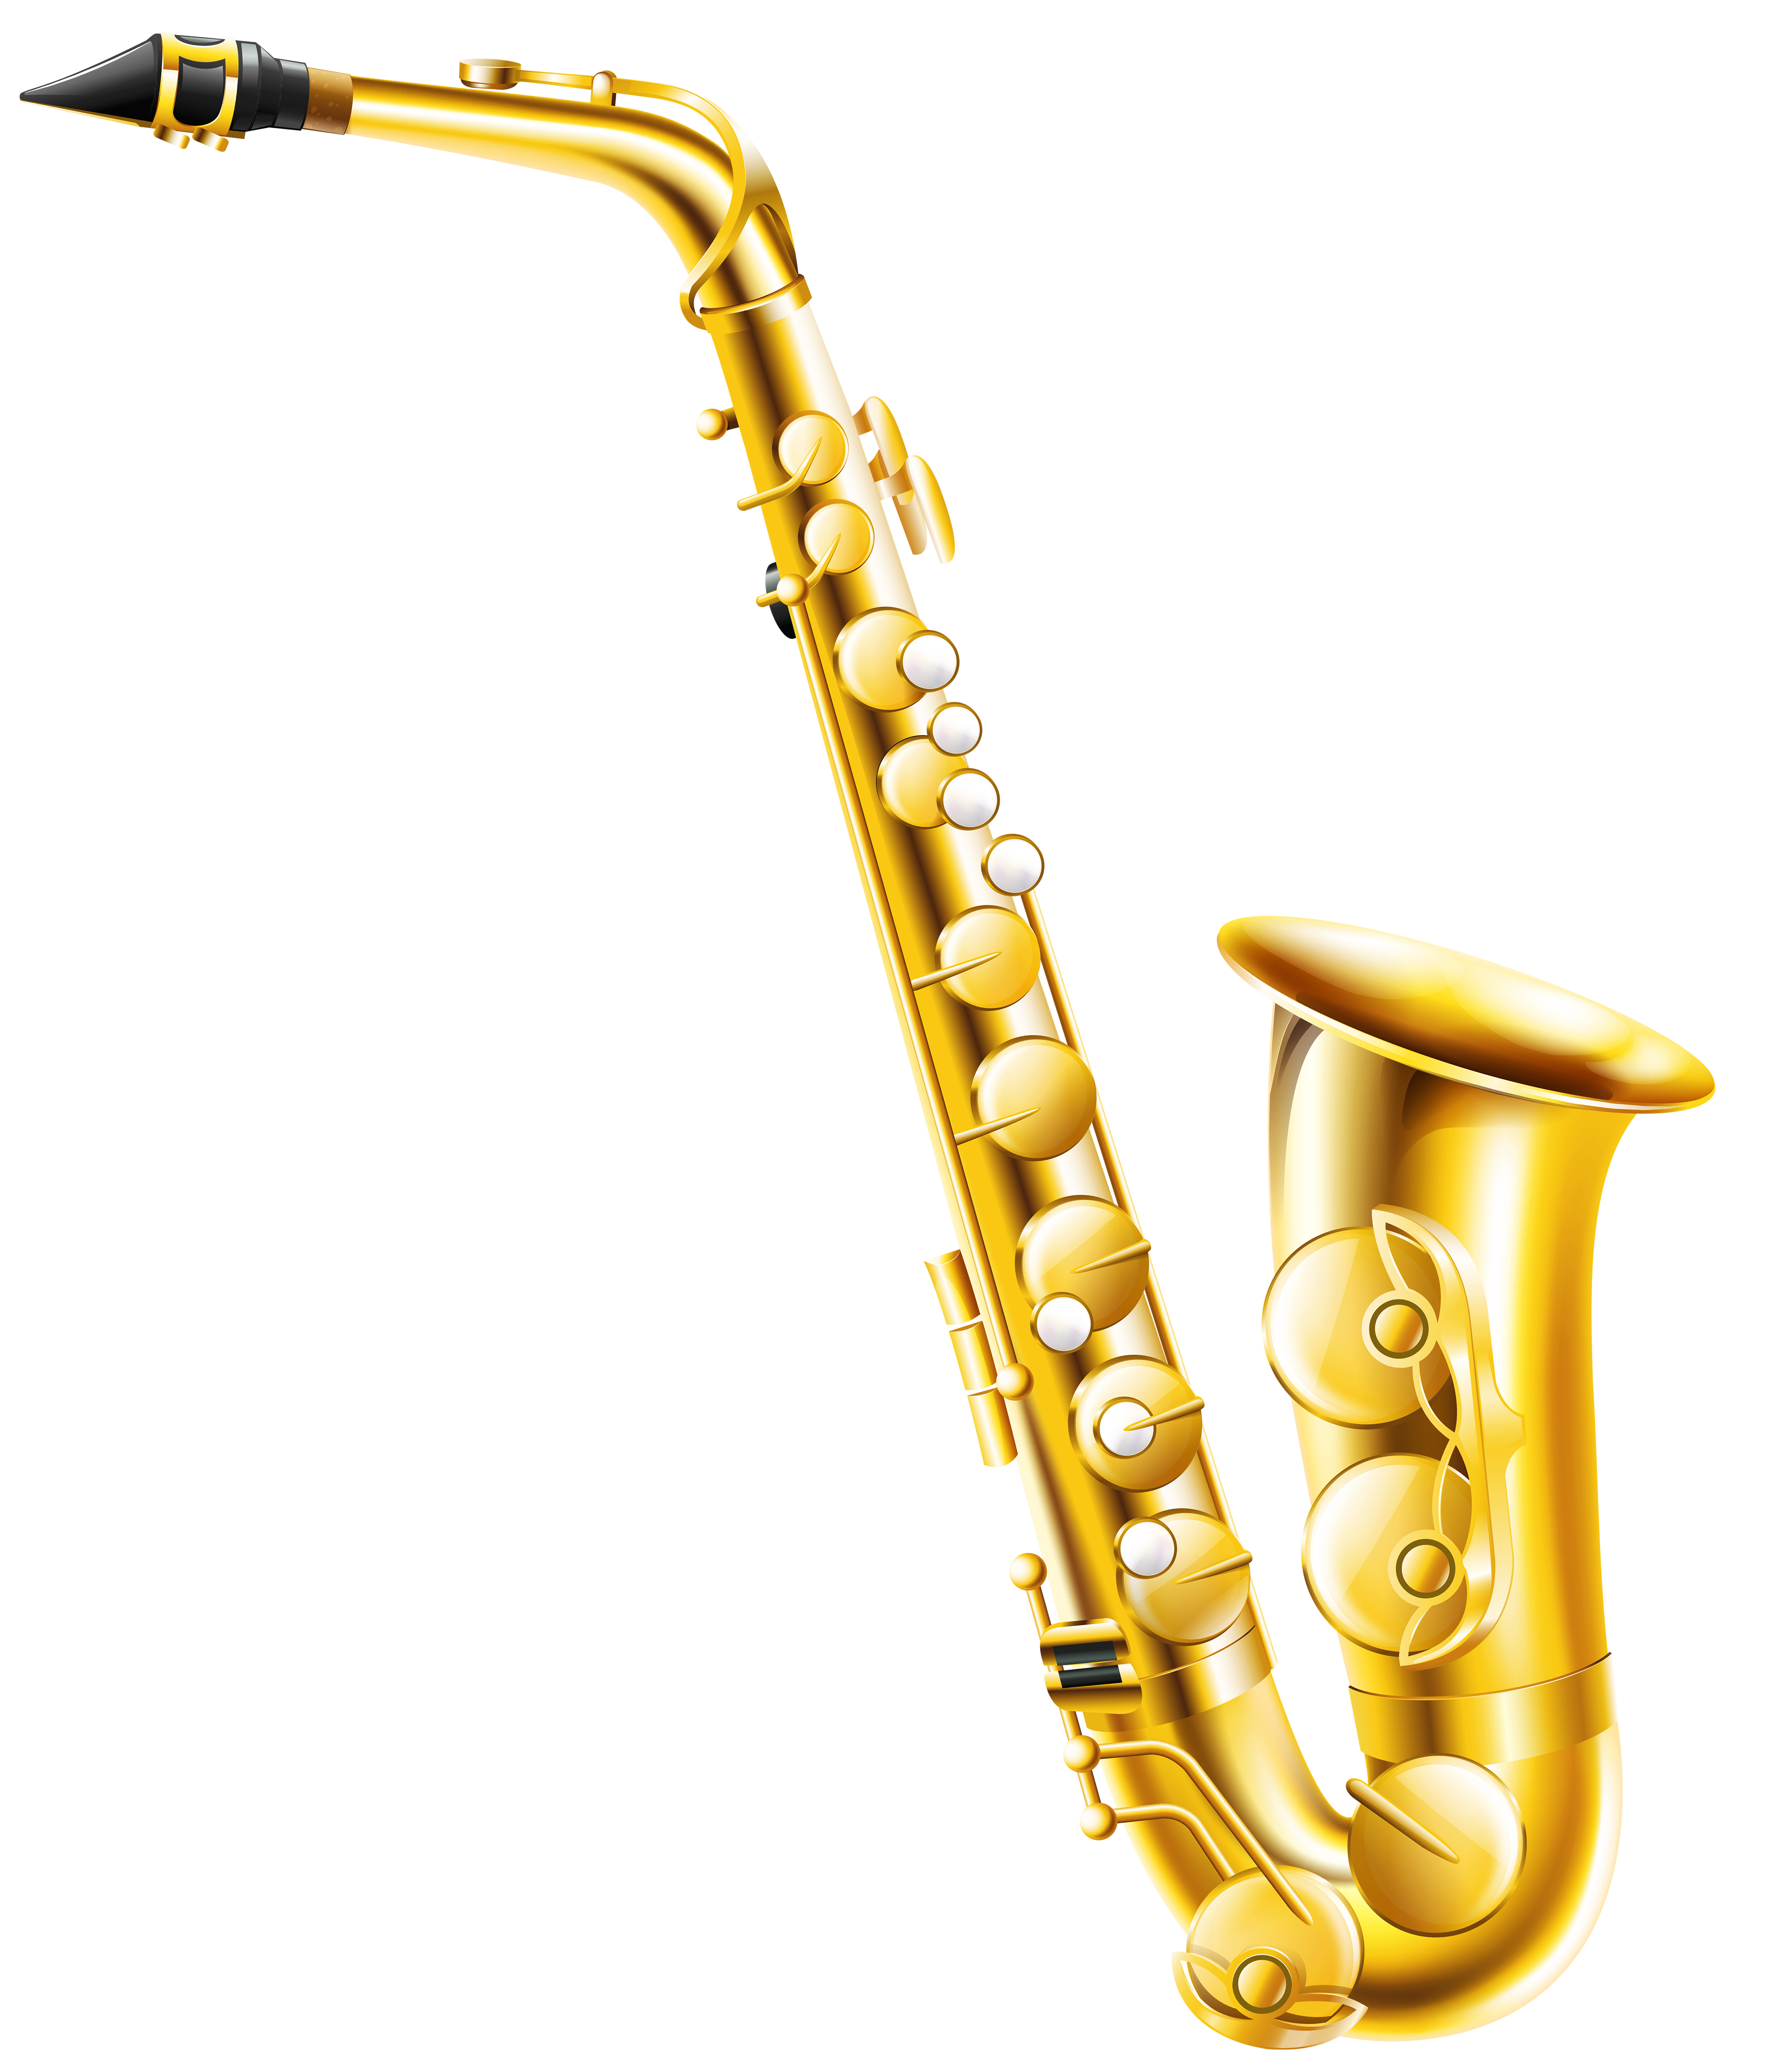 clip freeuse library Saxophone clipart. Transparent png gallery yopriceville